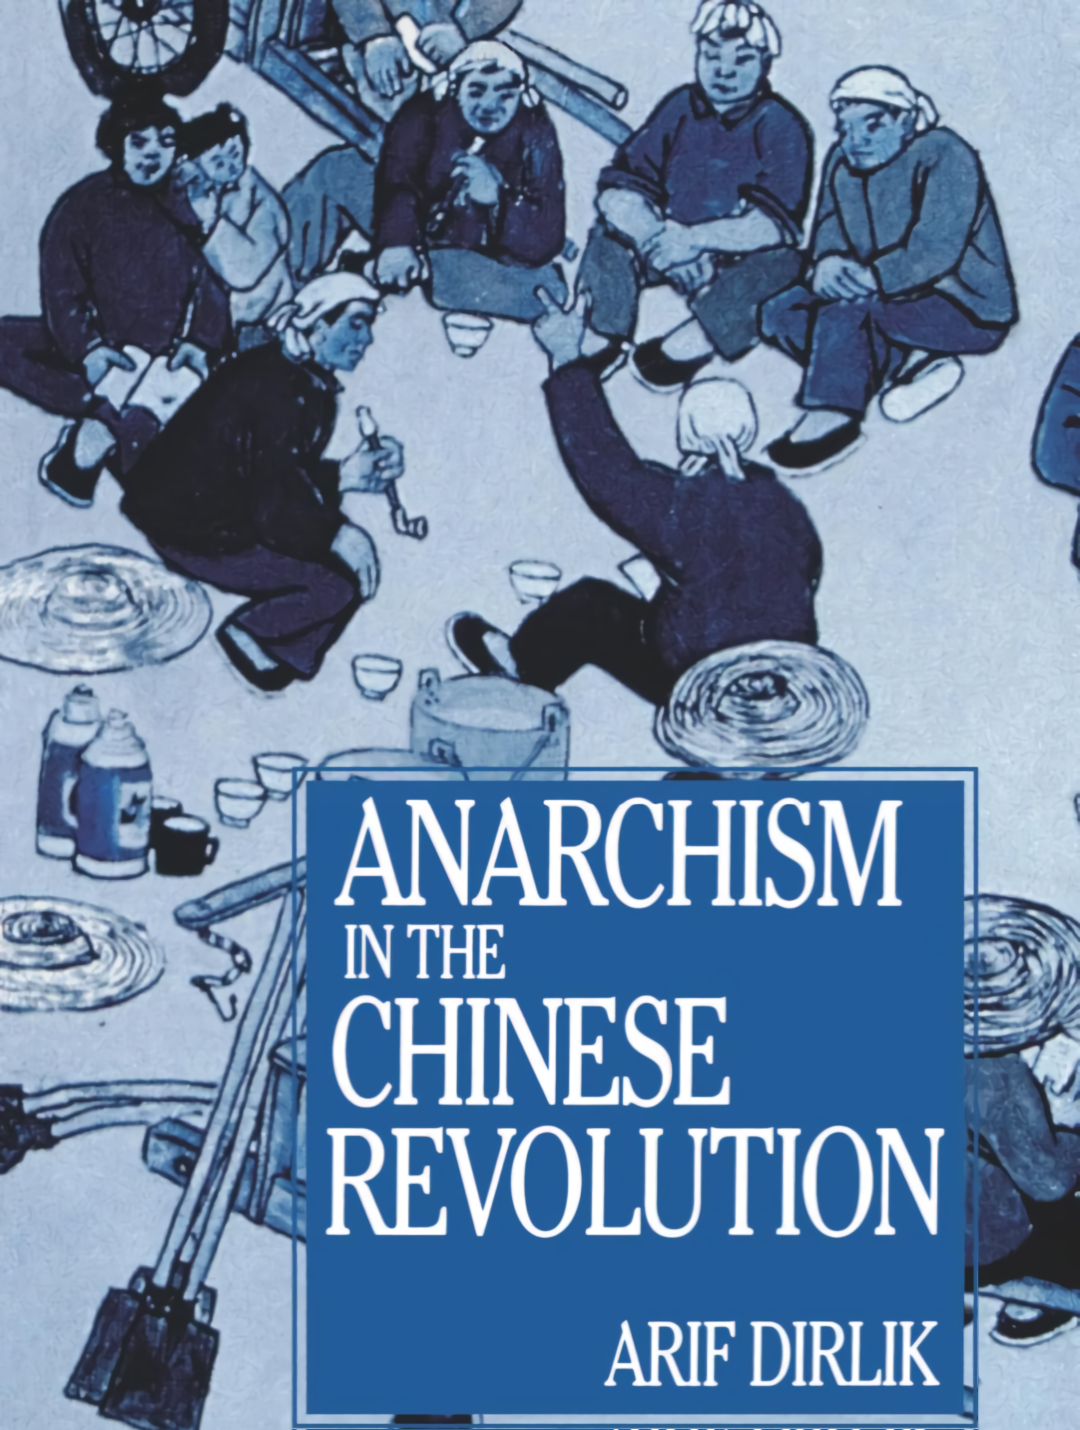 a-d-arif-dirlik-anarchism-in-the-chinese-revolutio-2.png